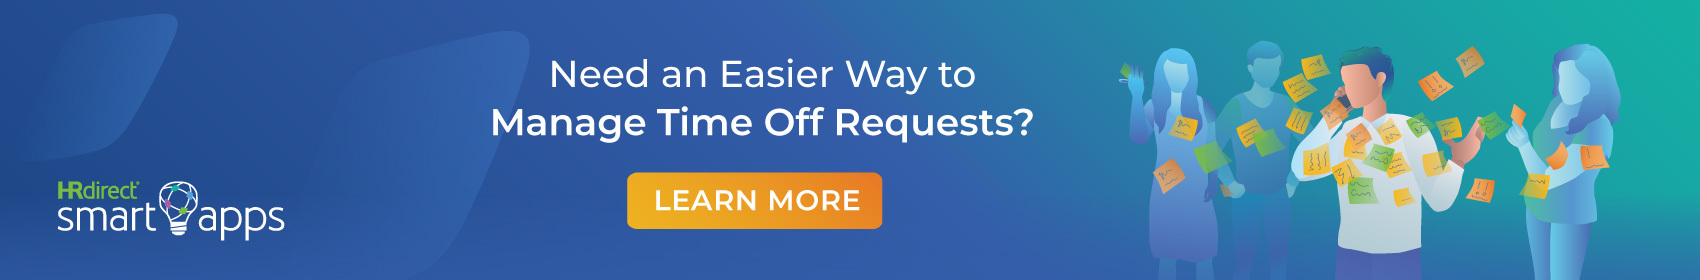 HRdirect Smart Apps - Time Off Request